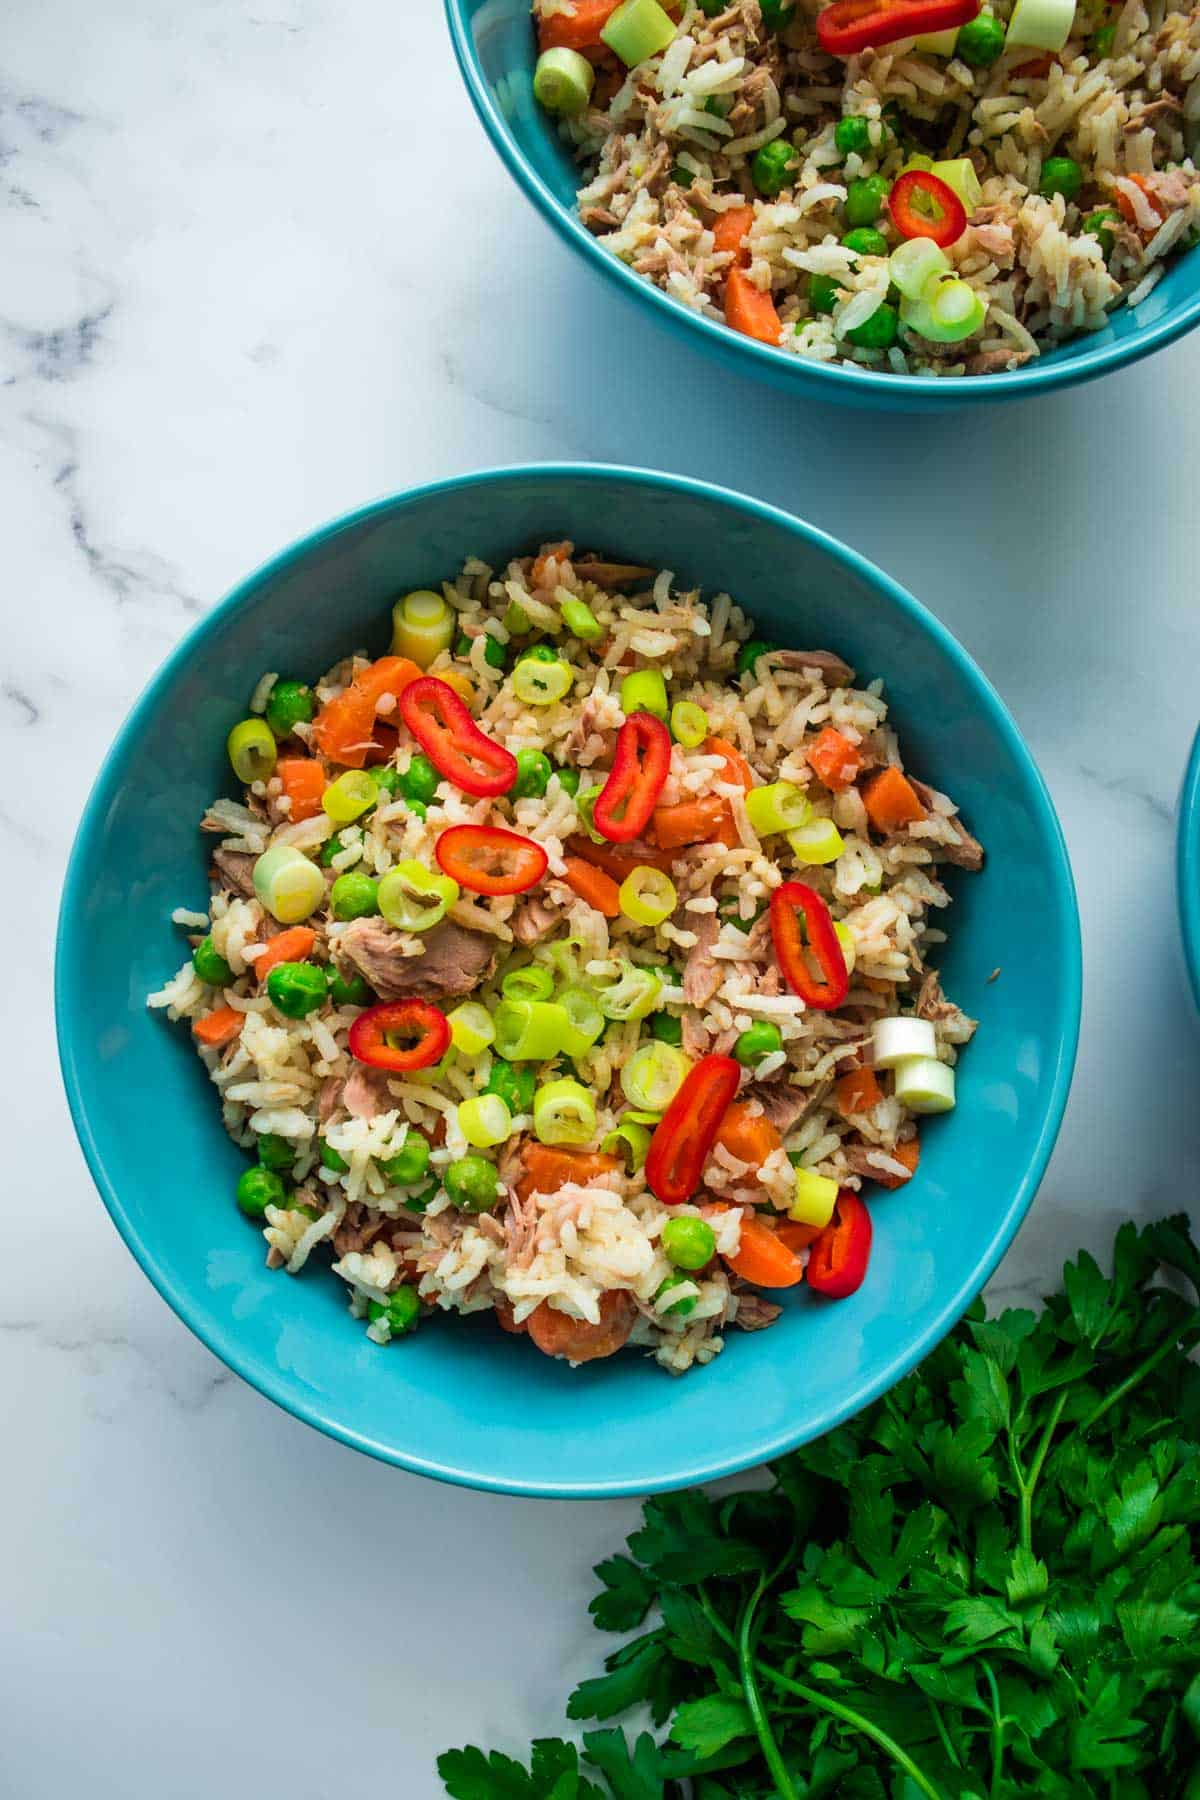 A bowl of fried rice with tuna, carrots, peas and chili.